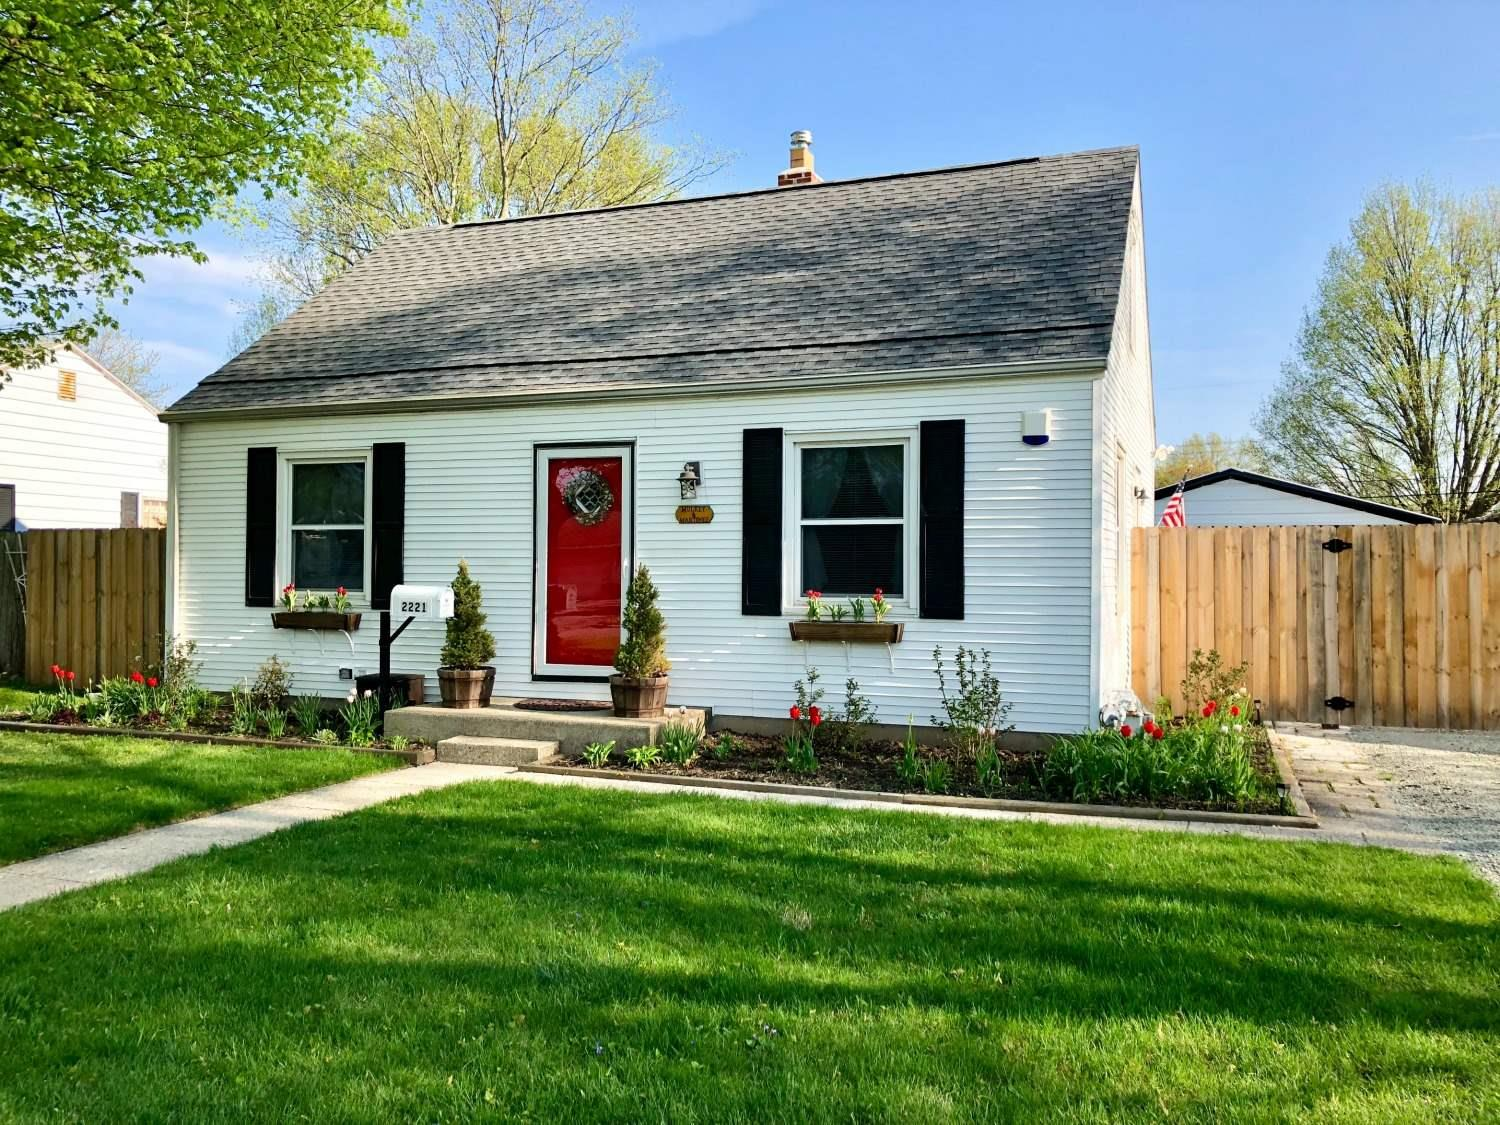 2221 Corby South Bend, IN 46615